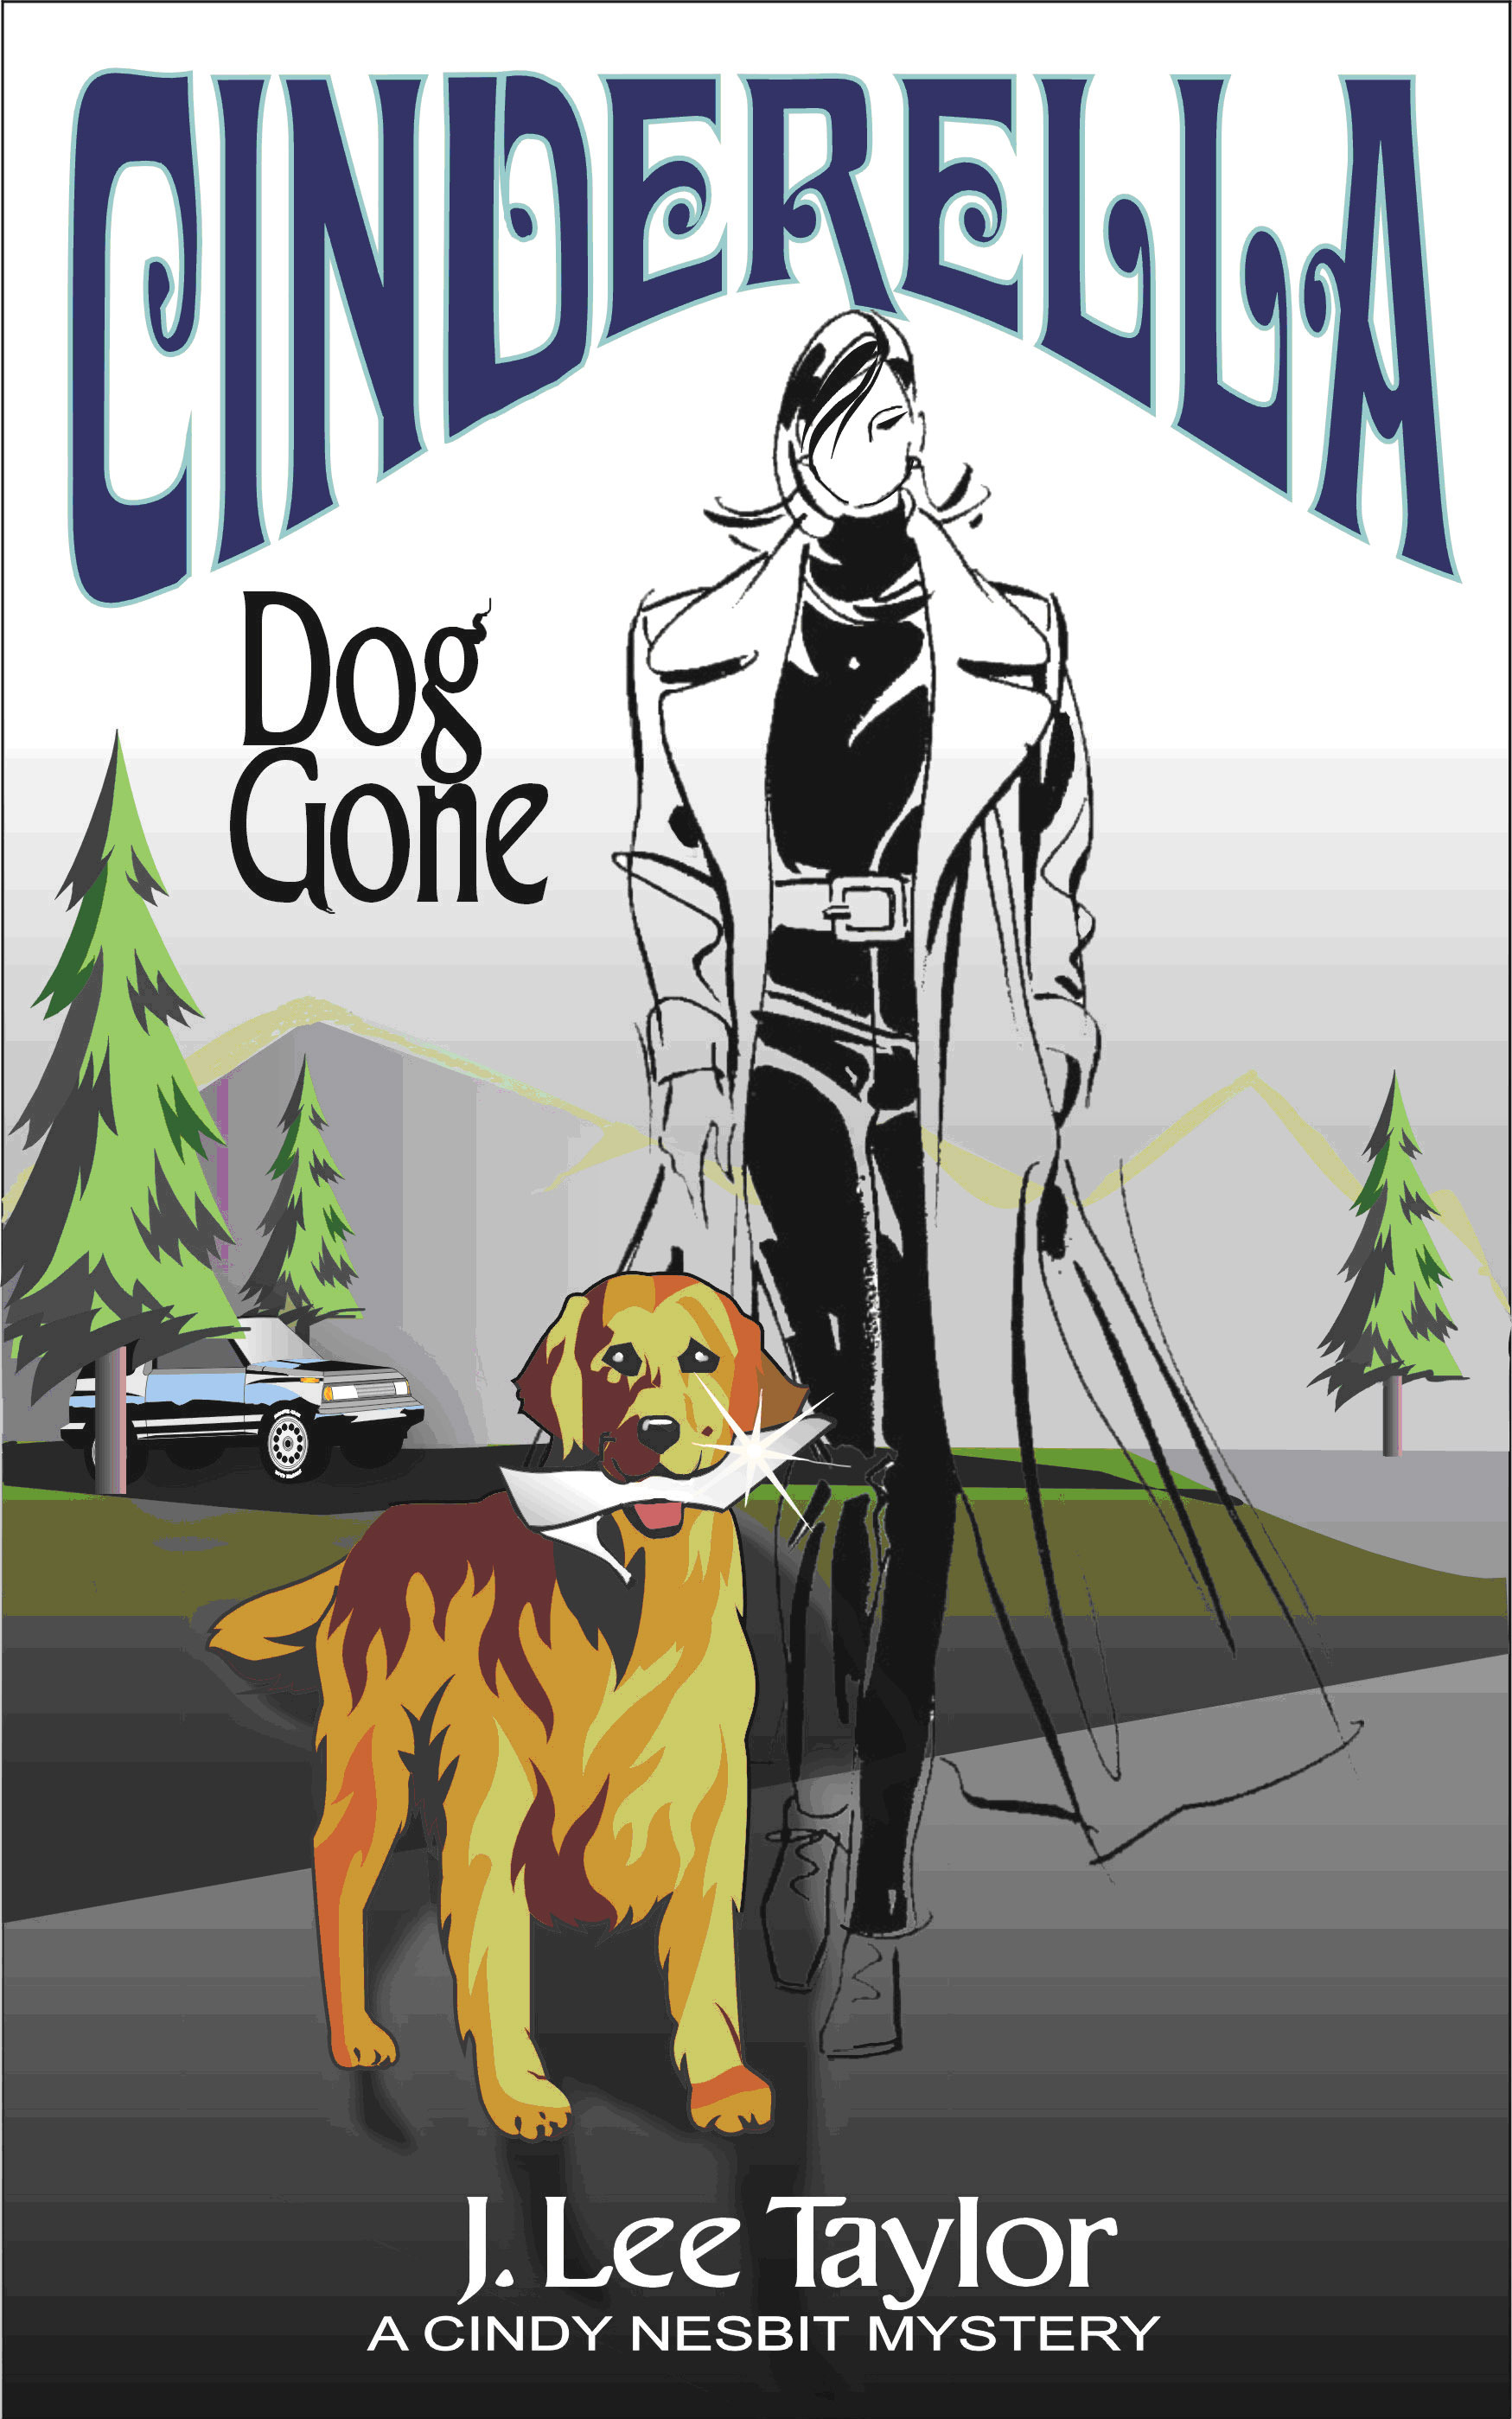 Cinderella: Dog Gone, A Cindy Nesbit Mystery